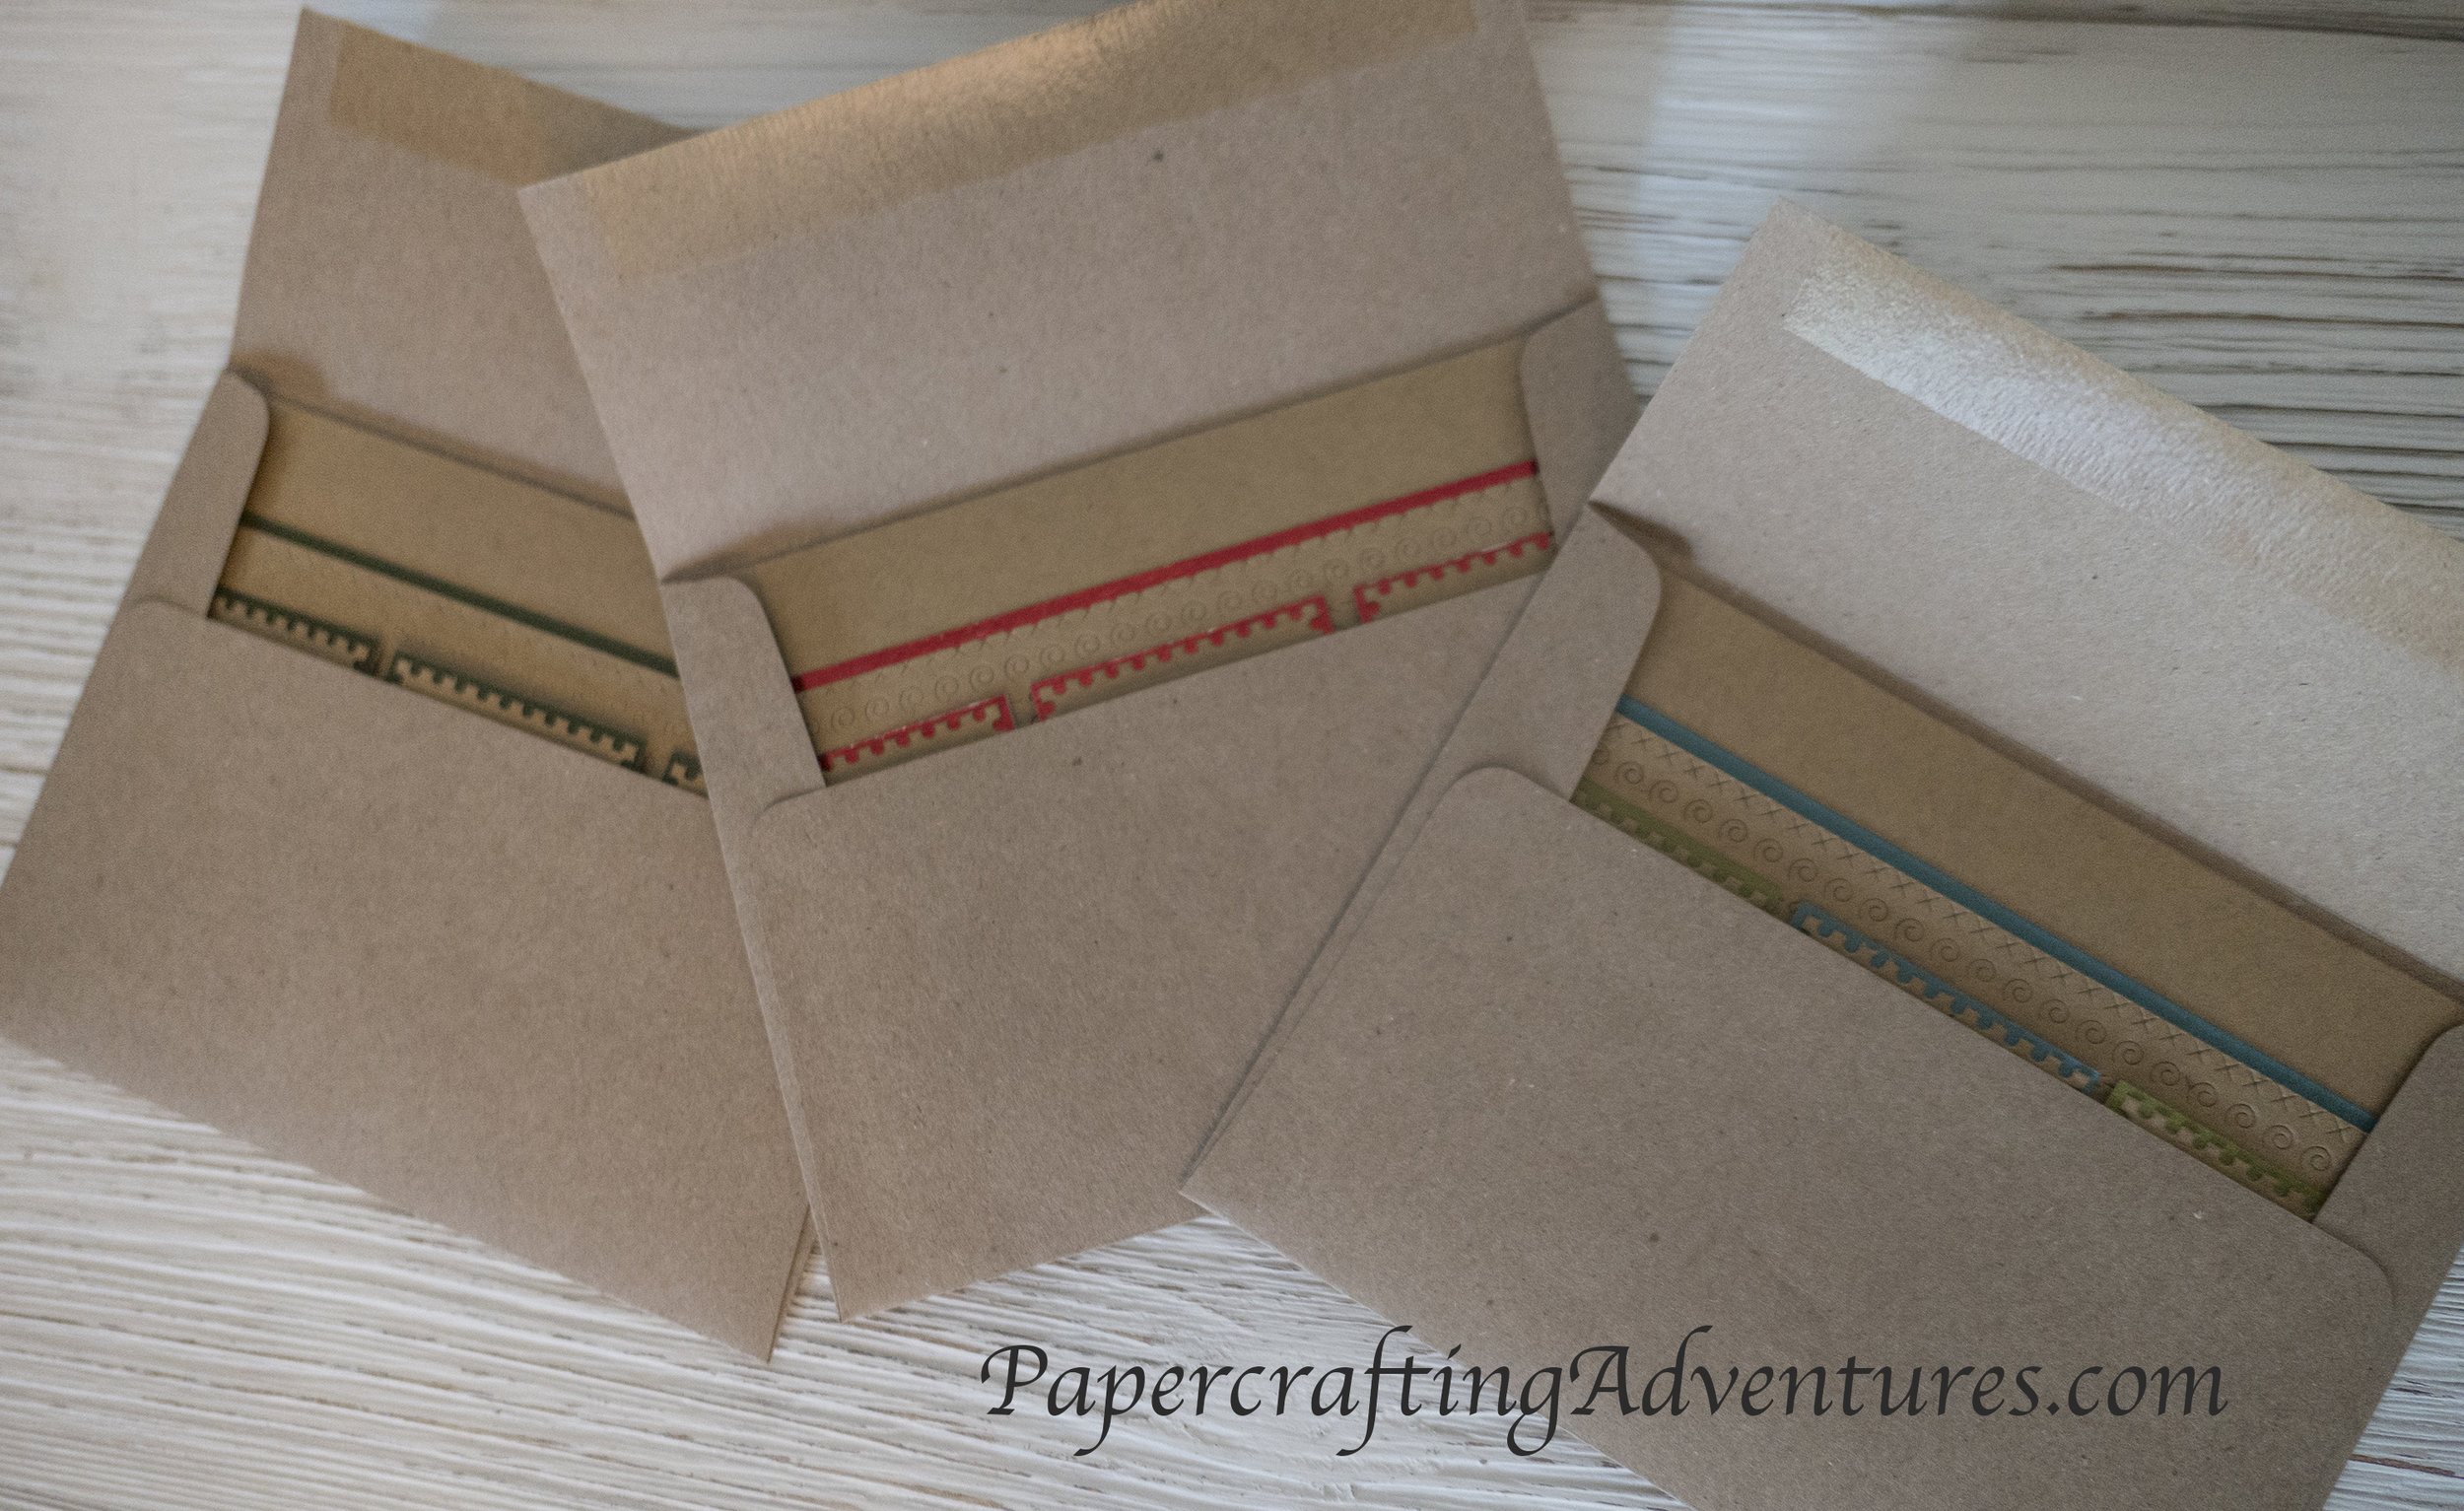 I love how festive these look even before they are out of the envelope.